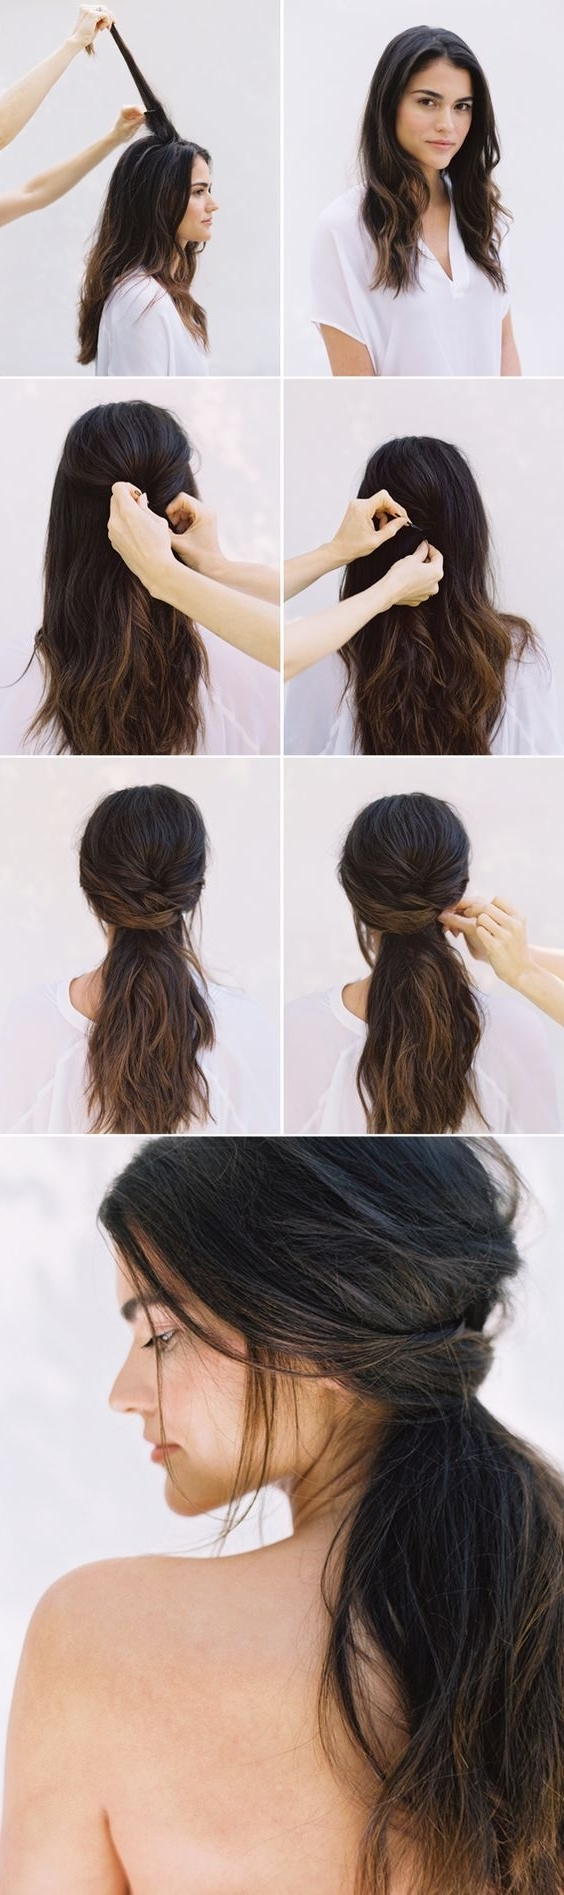 15 Easy Hair Tutorials For Curly Hair – Pretty Designs Pertaining To Easy Updos For Wavy Hair (View 12 of 15)